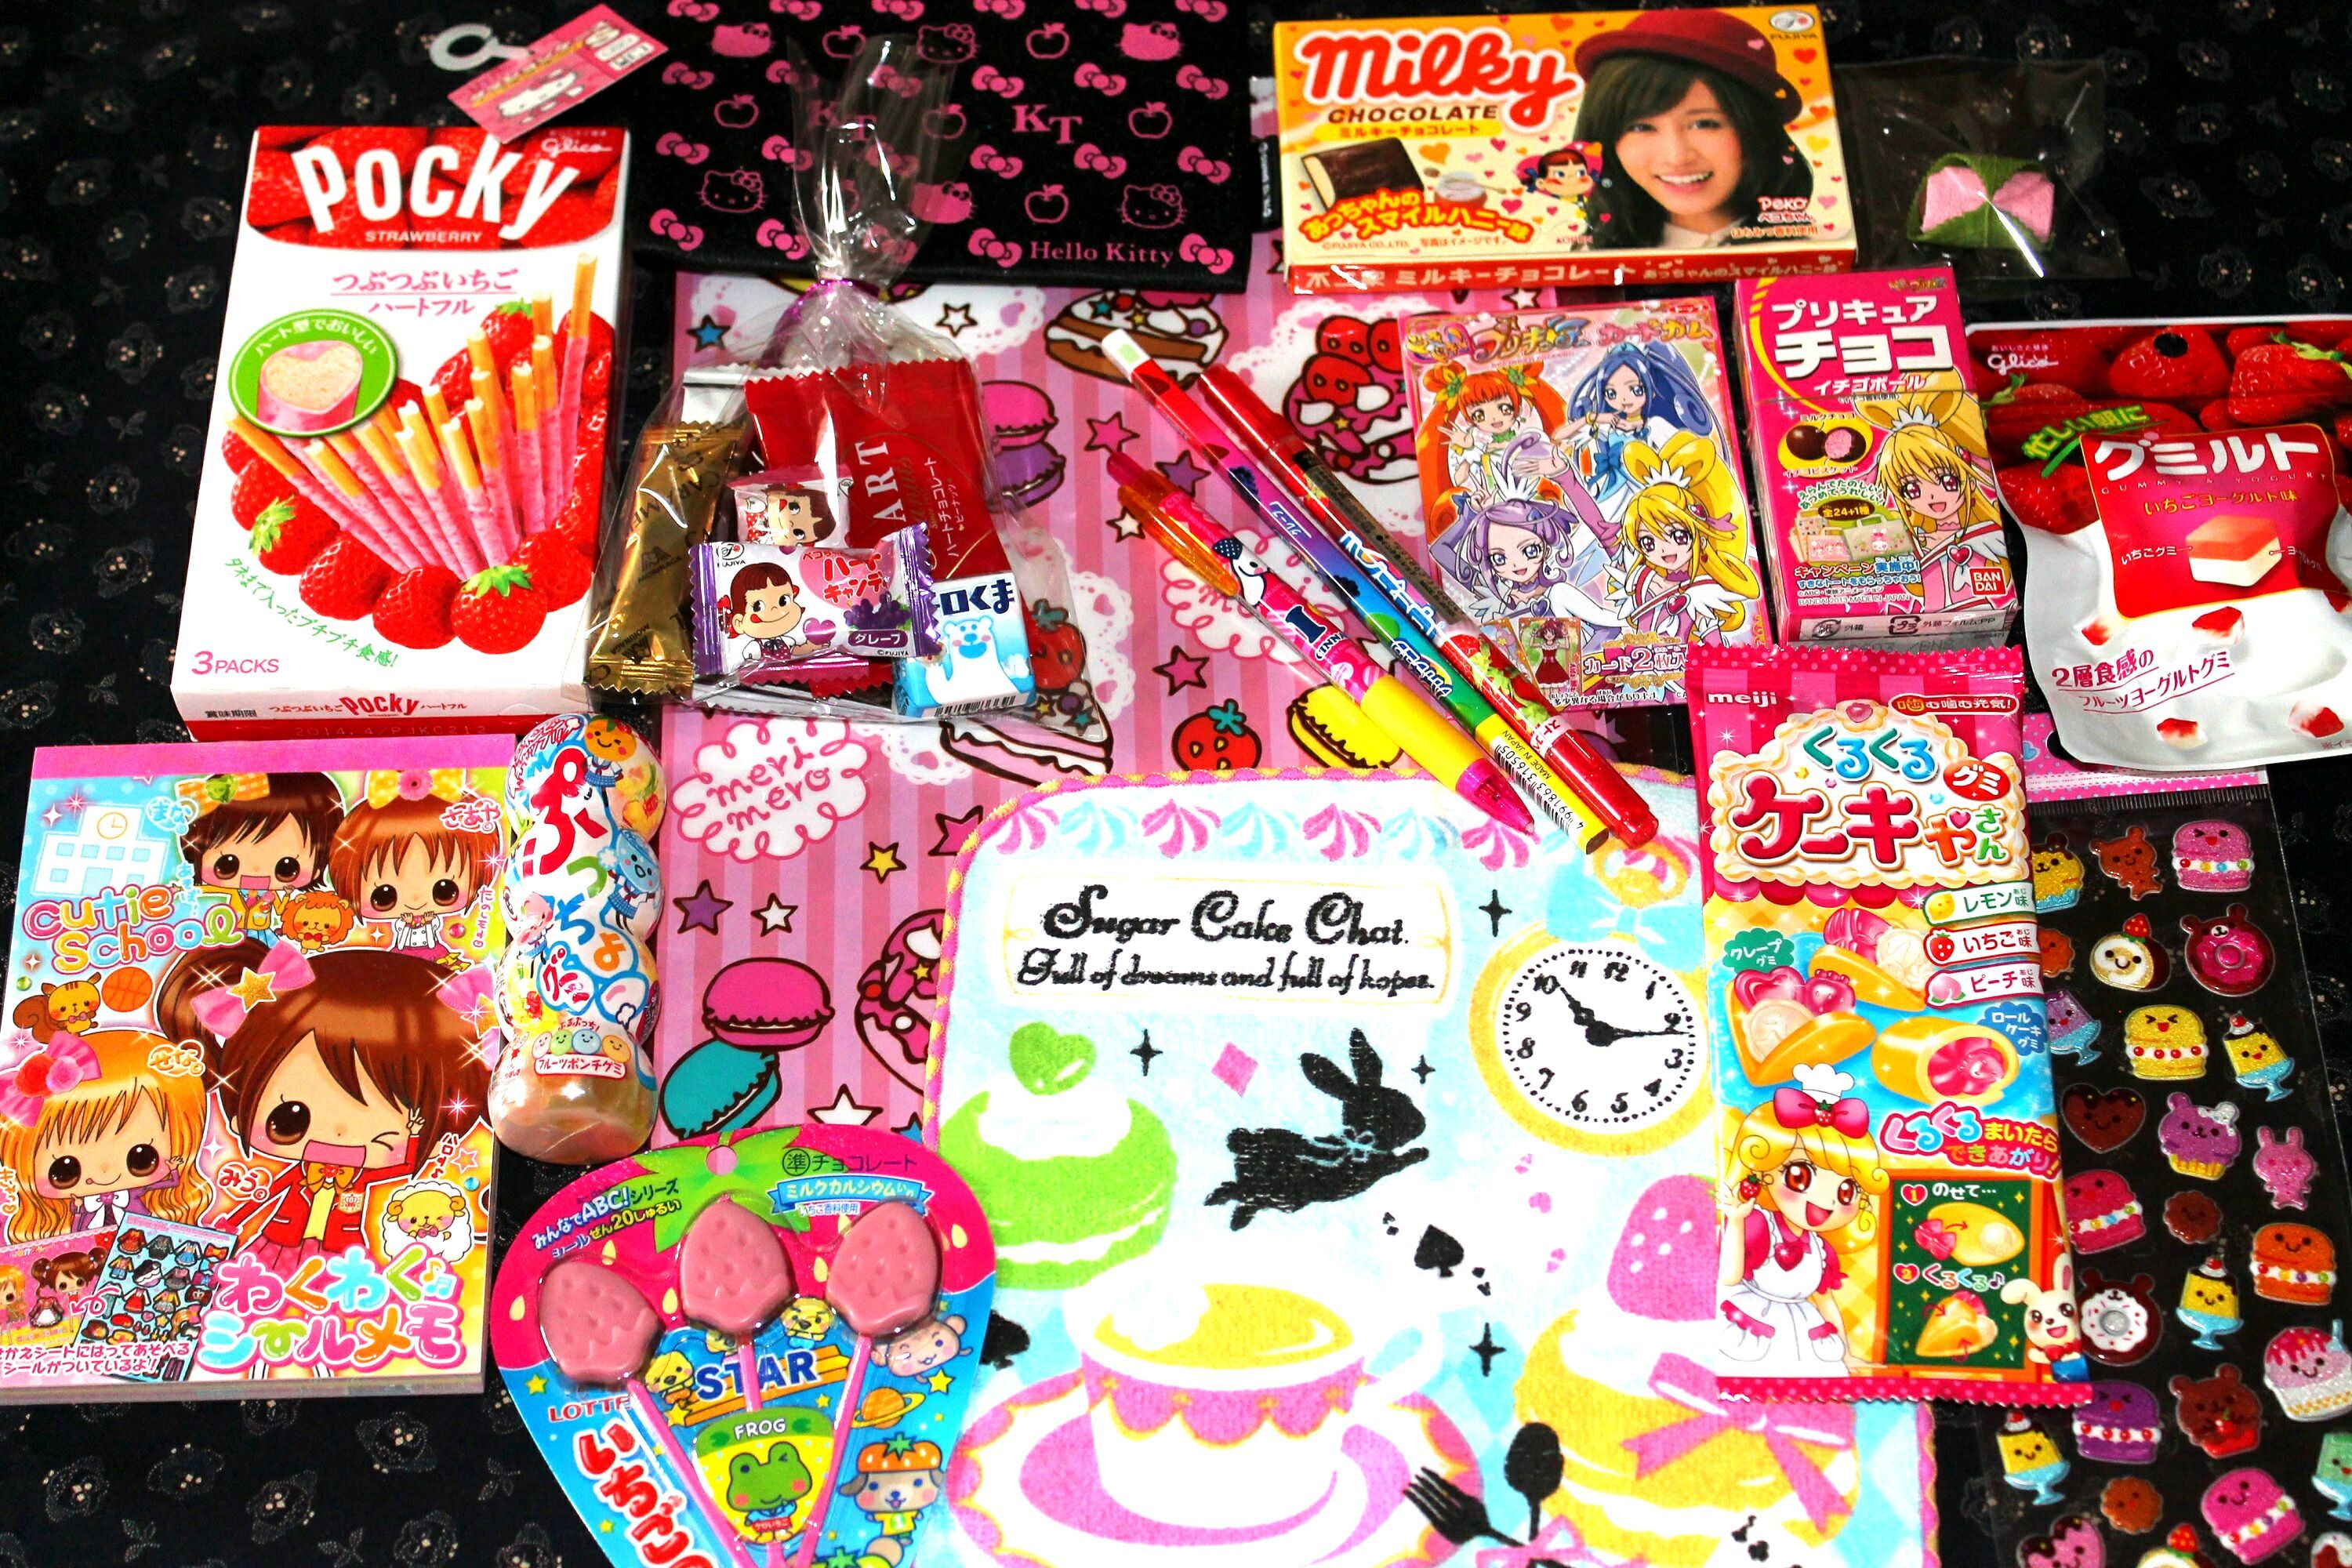 Get+a+variety+of+cute+goods+at+a+bargain+price!+The+Kawaii+package+includes+many+cute+items+and+candy+from+Japan!+Items+included+in+the+package+will+vary.+Packages+will+generally+include+the+amount+as+pictured. Please+do+not+purchase+if+you+have+food+allergies.  Free+Shipping! (For+US,UK,Ca...